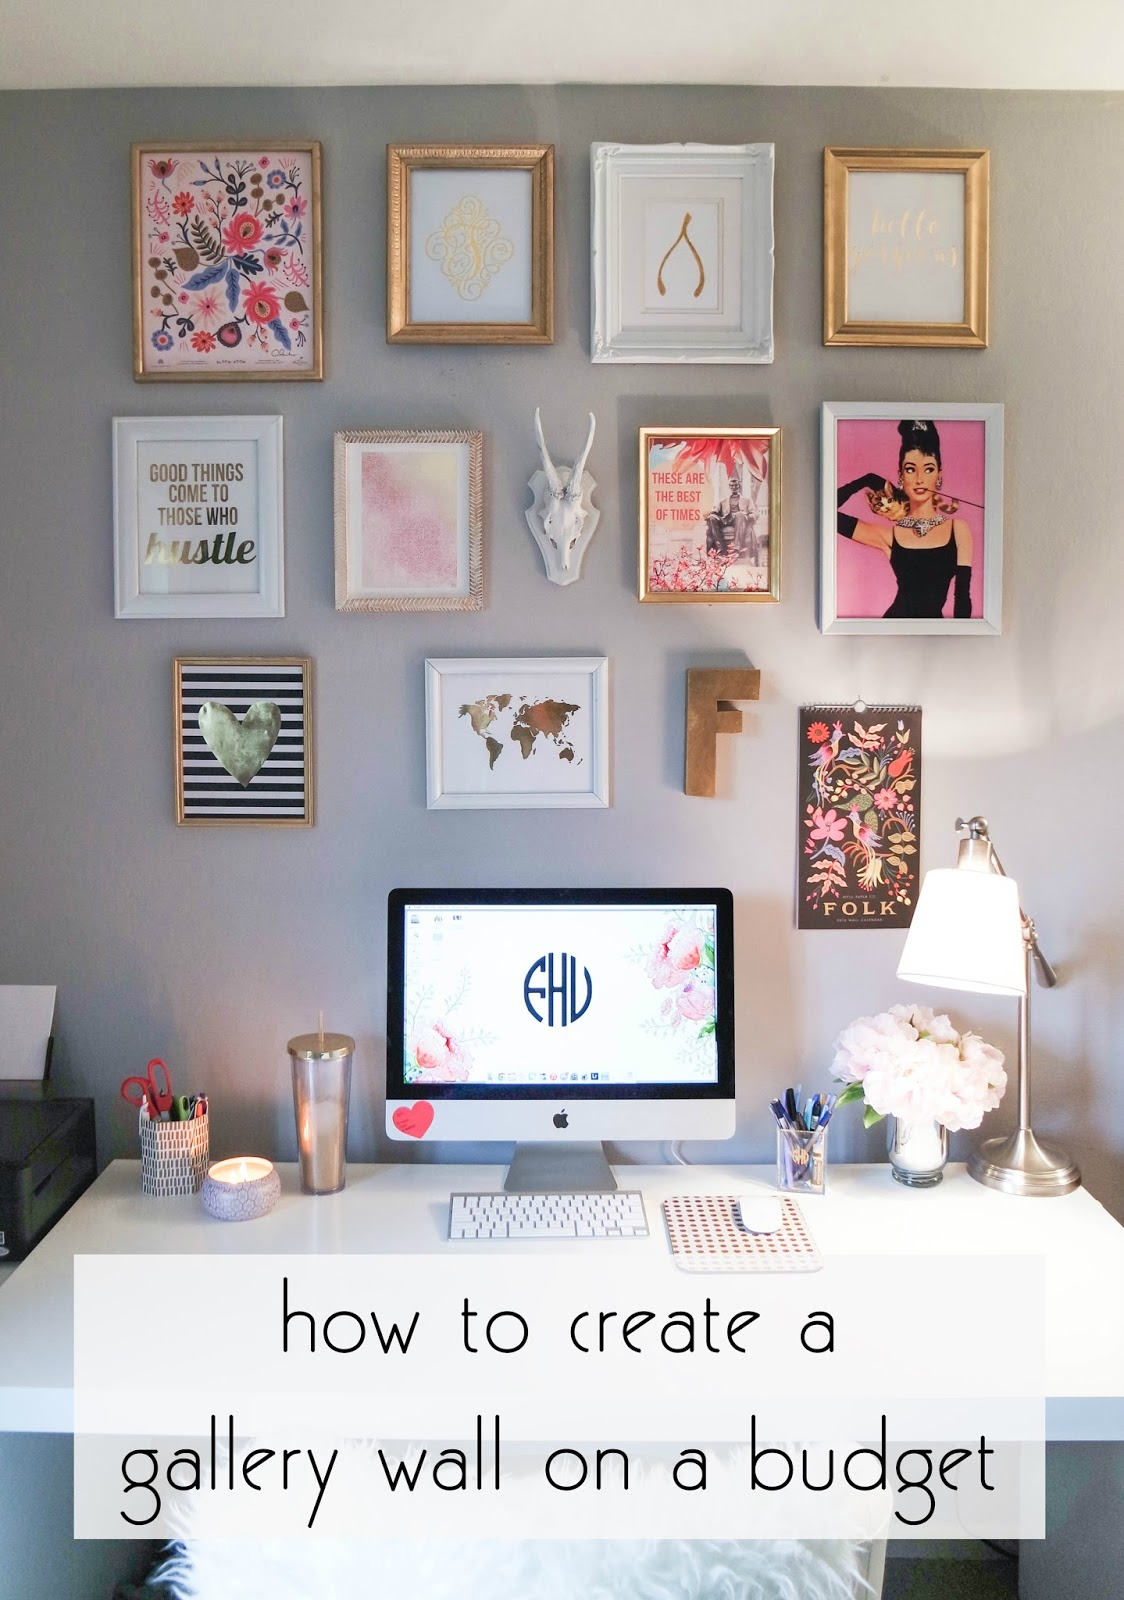 Franish creating a gallery wall on a budget for How to build a home on a budget